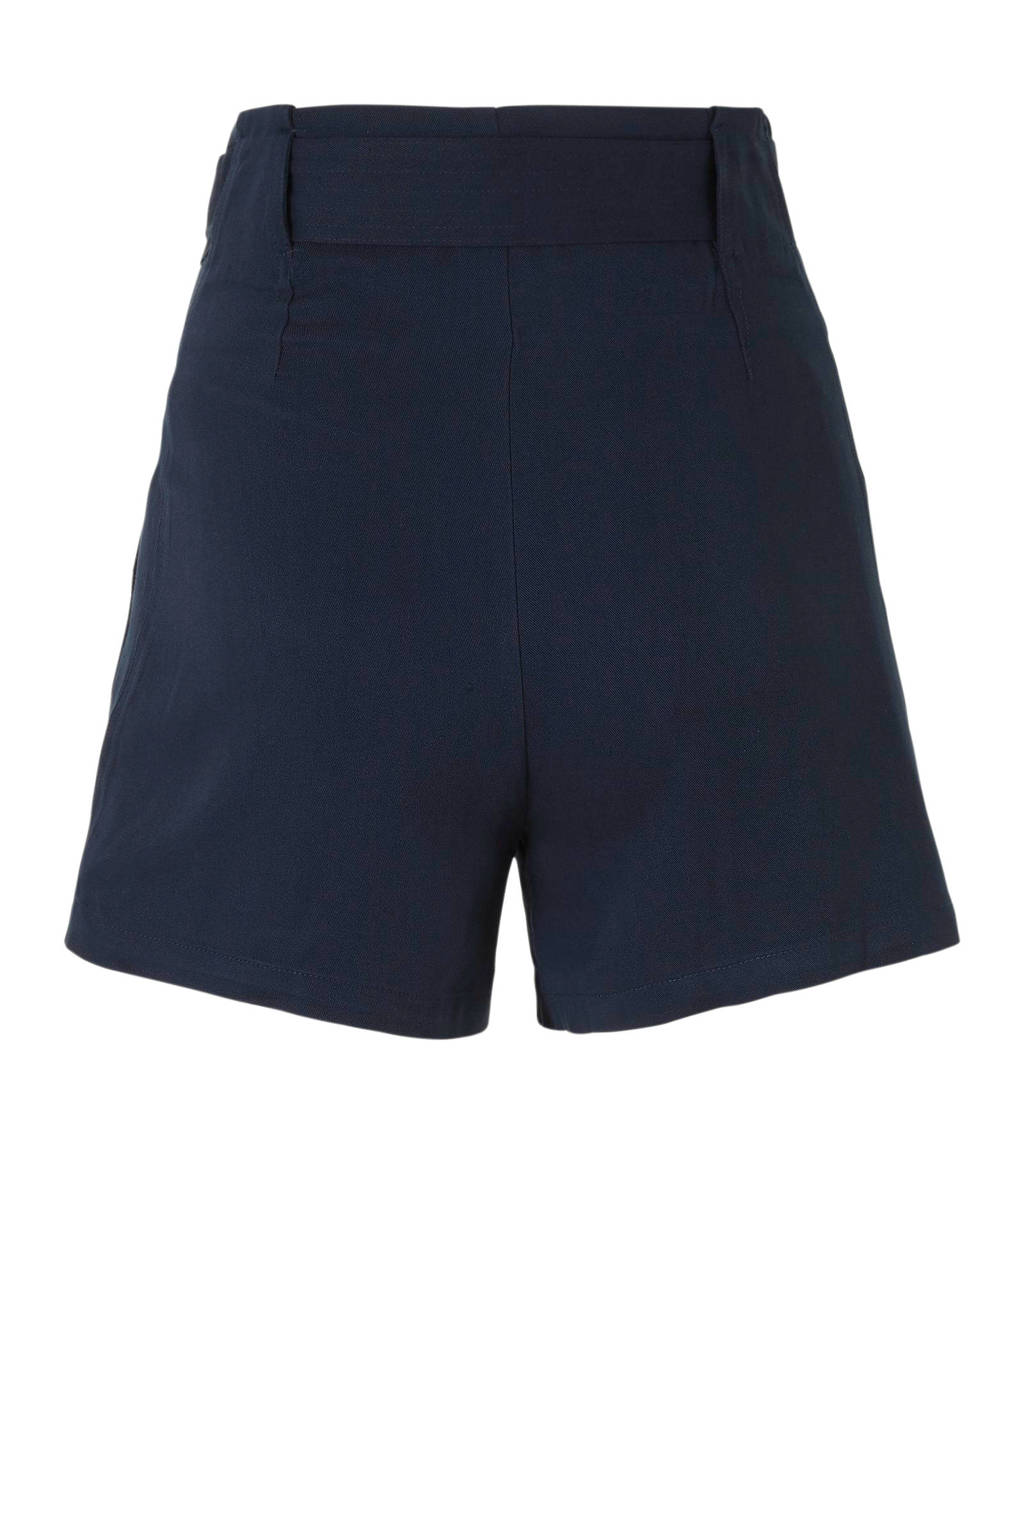 Y.A.S high waist loose fit short donkerblauw, Donkerblauw